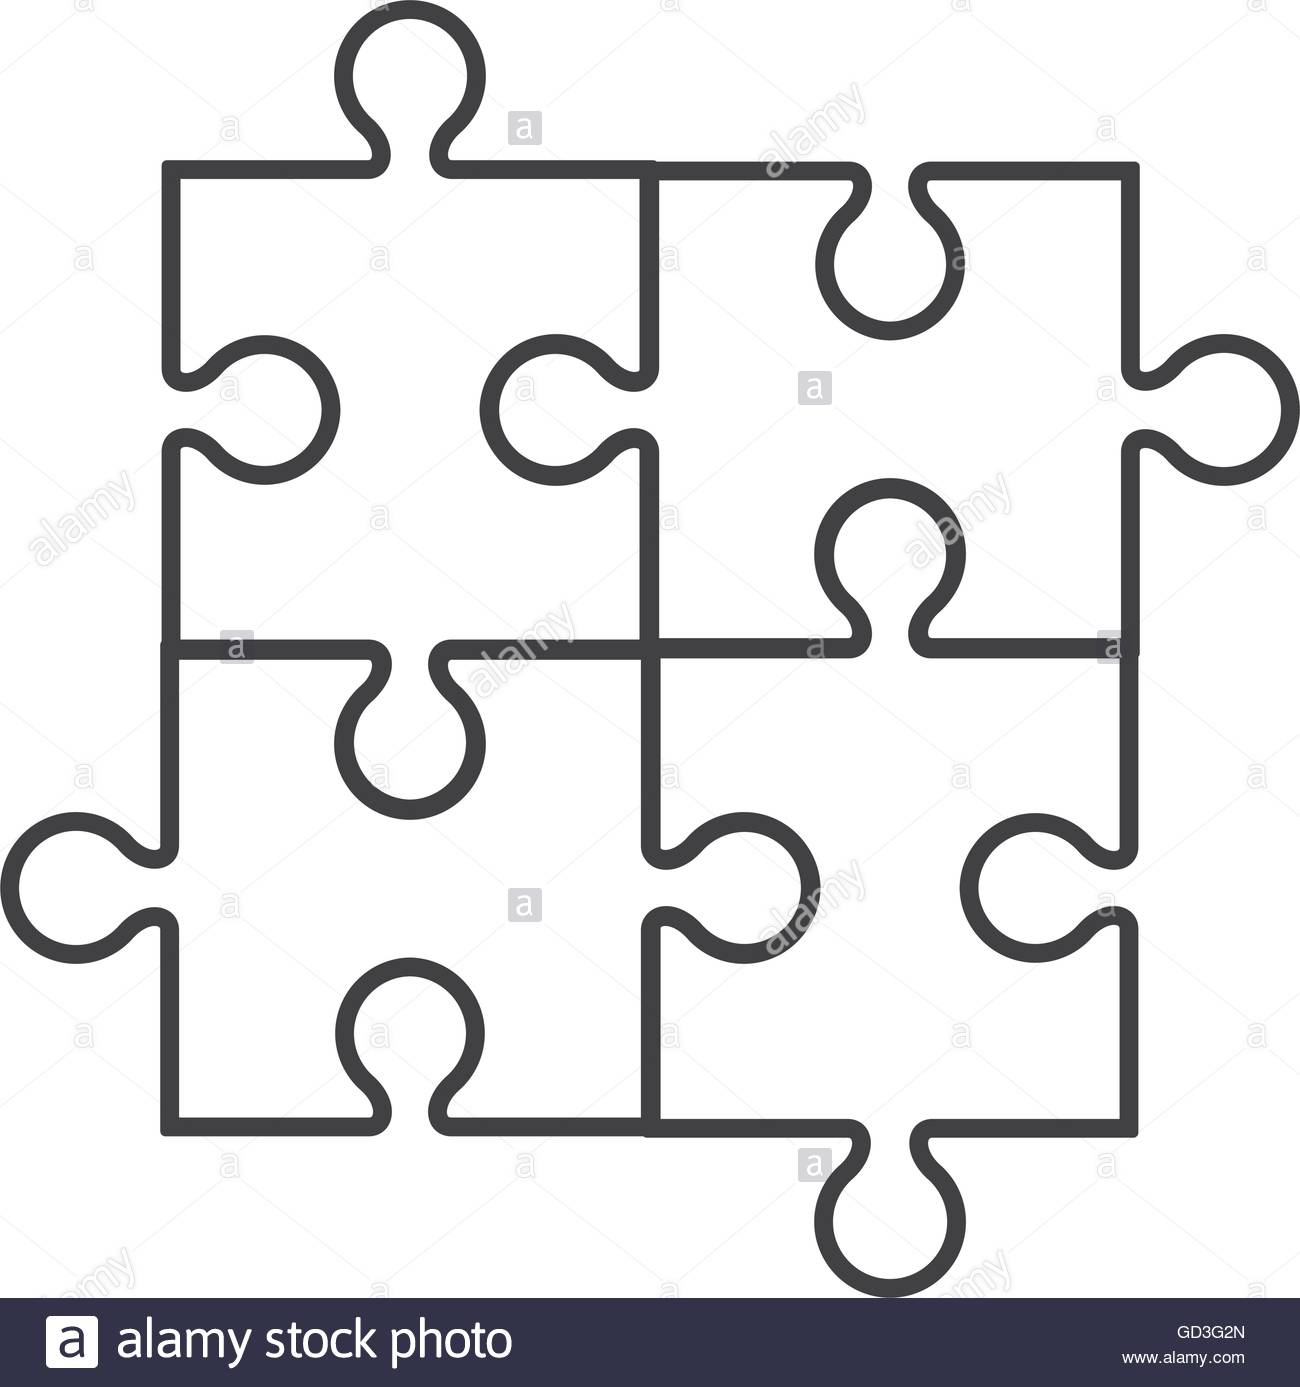 1300x1387 Square In Four Puzzle Pieces Icon Stock Vector Art Amp Illustration